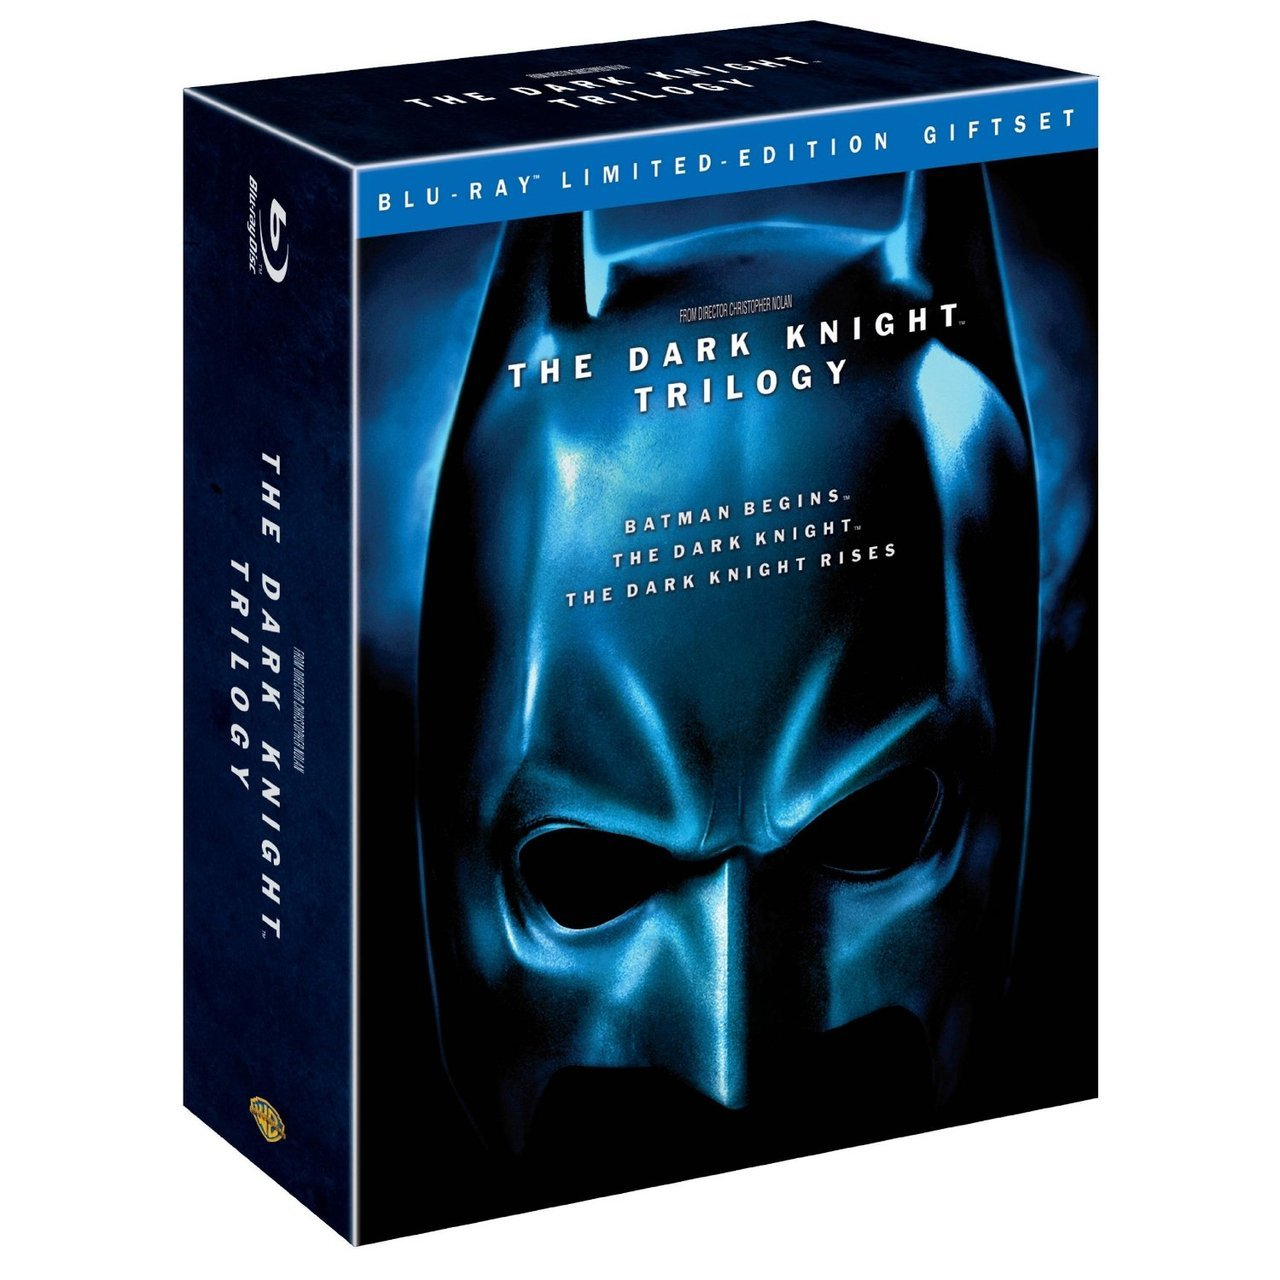 It's Cyber Monday, so why not pre-order The Dark Knight trilogy for $30.